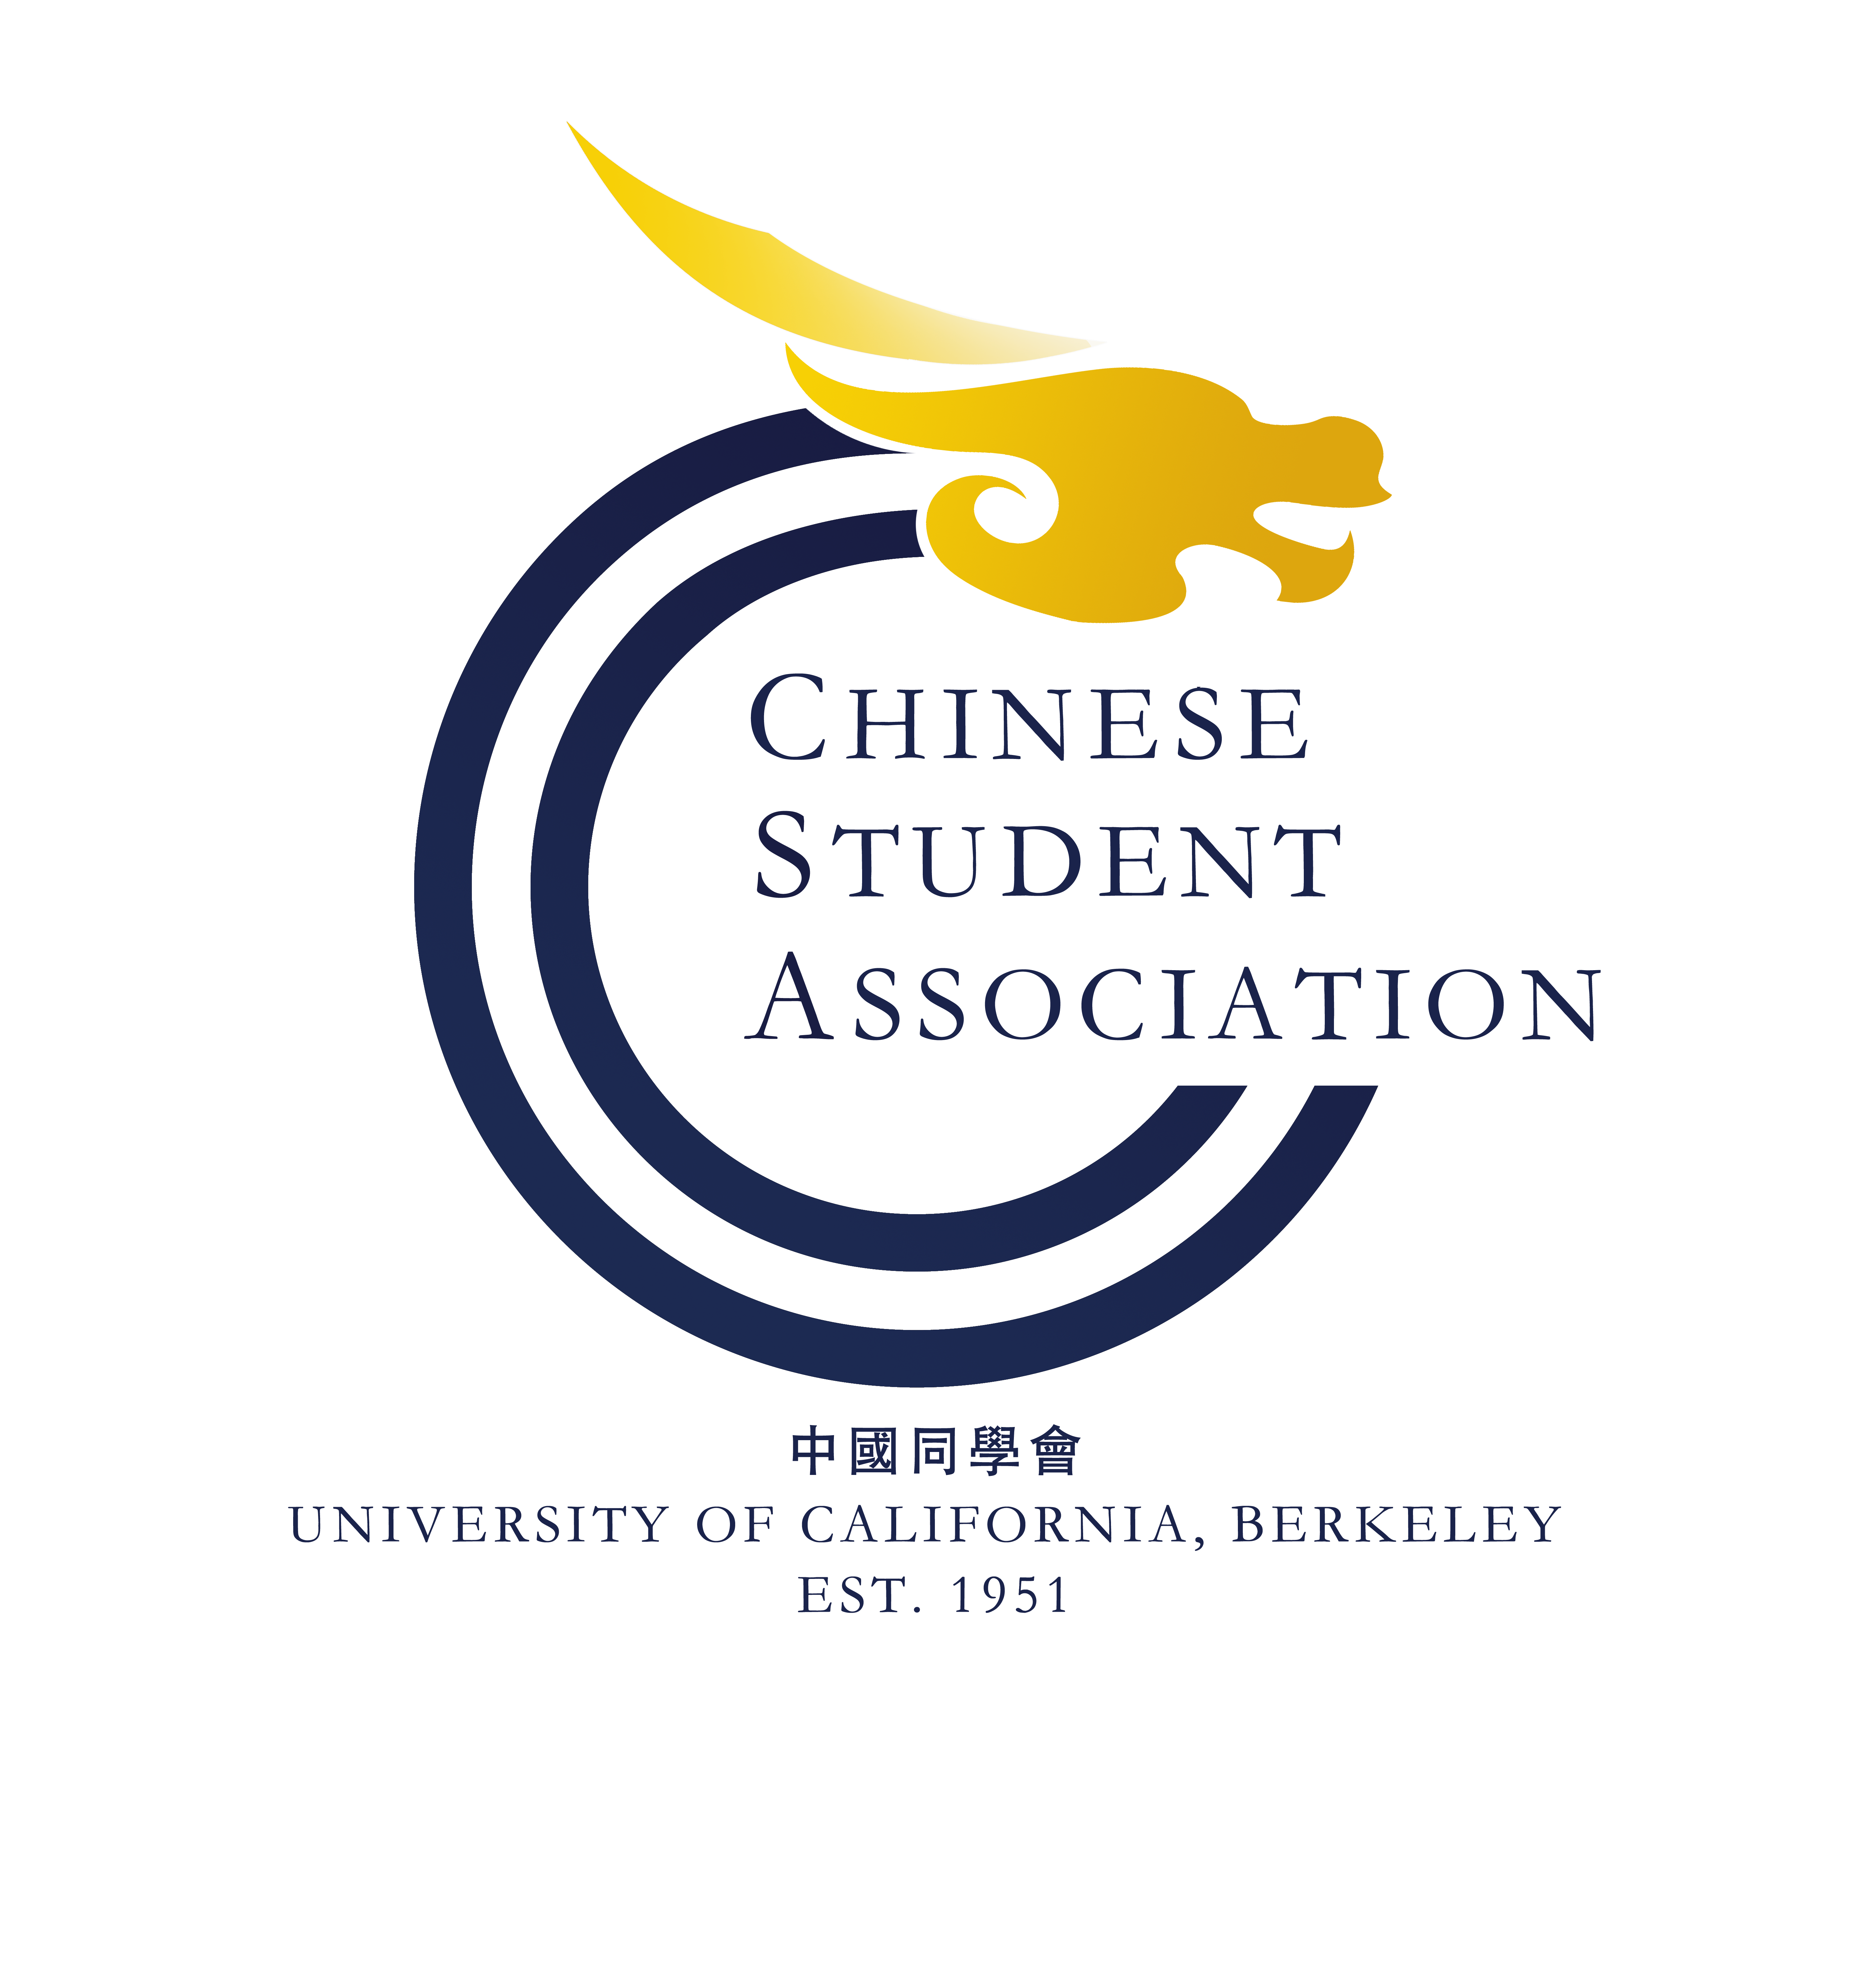 UCB Chinese Student Association